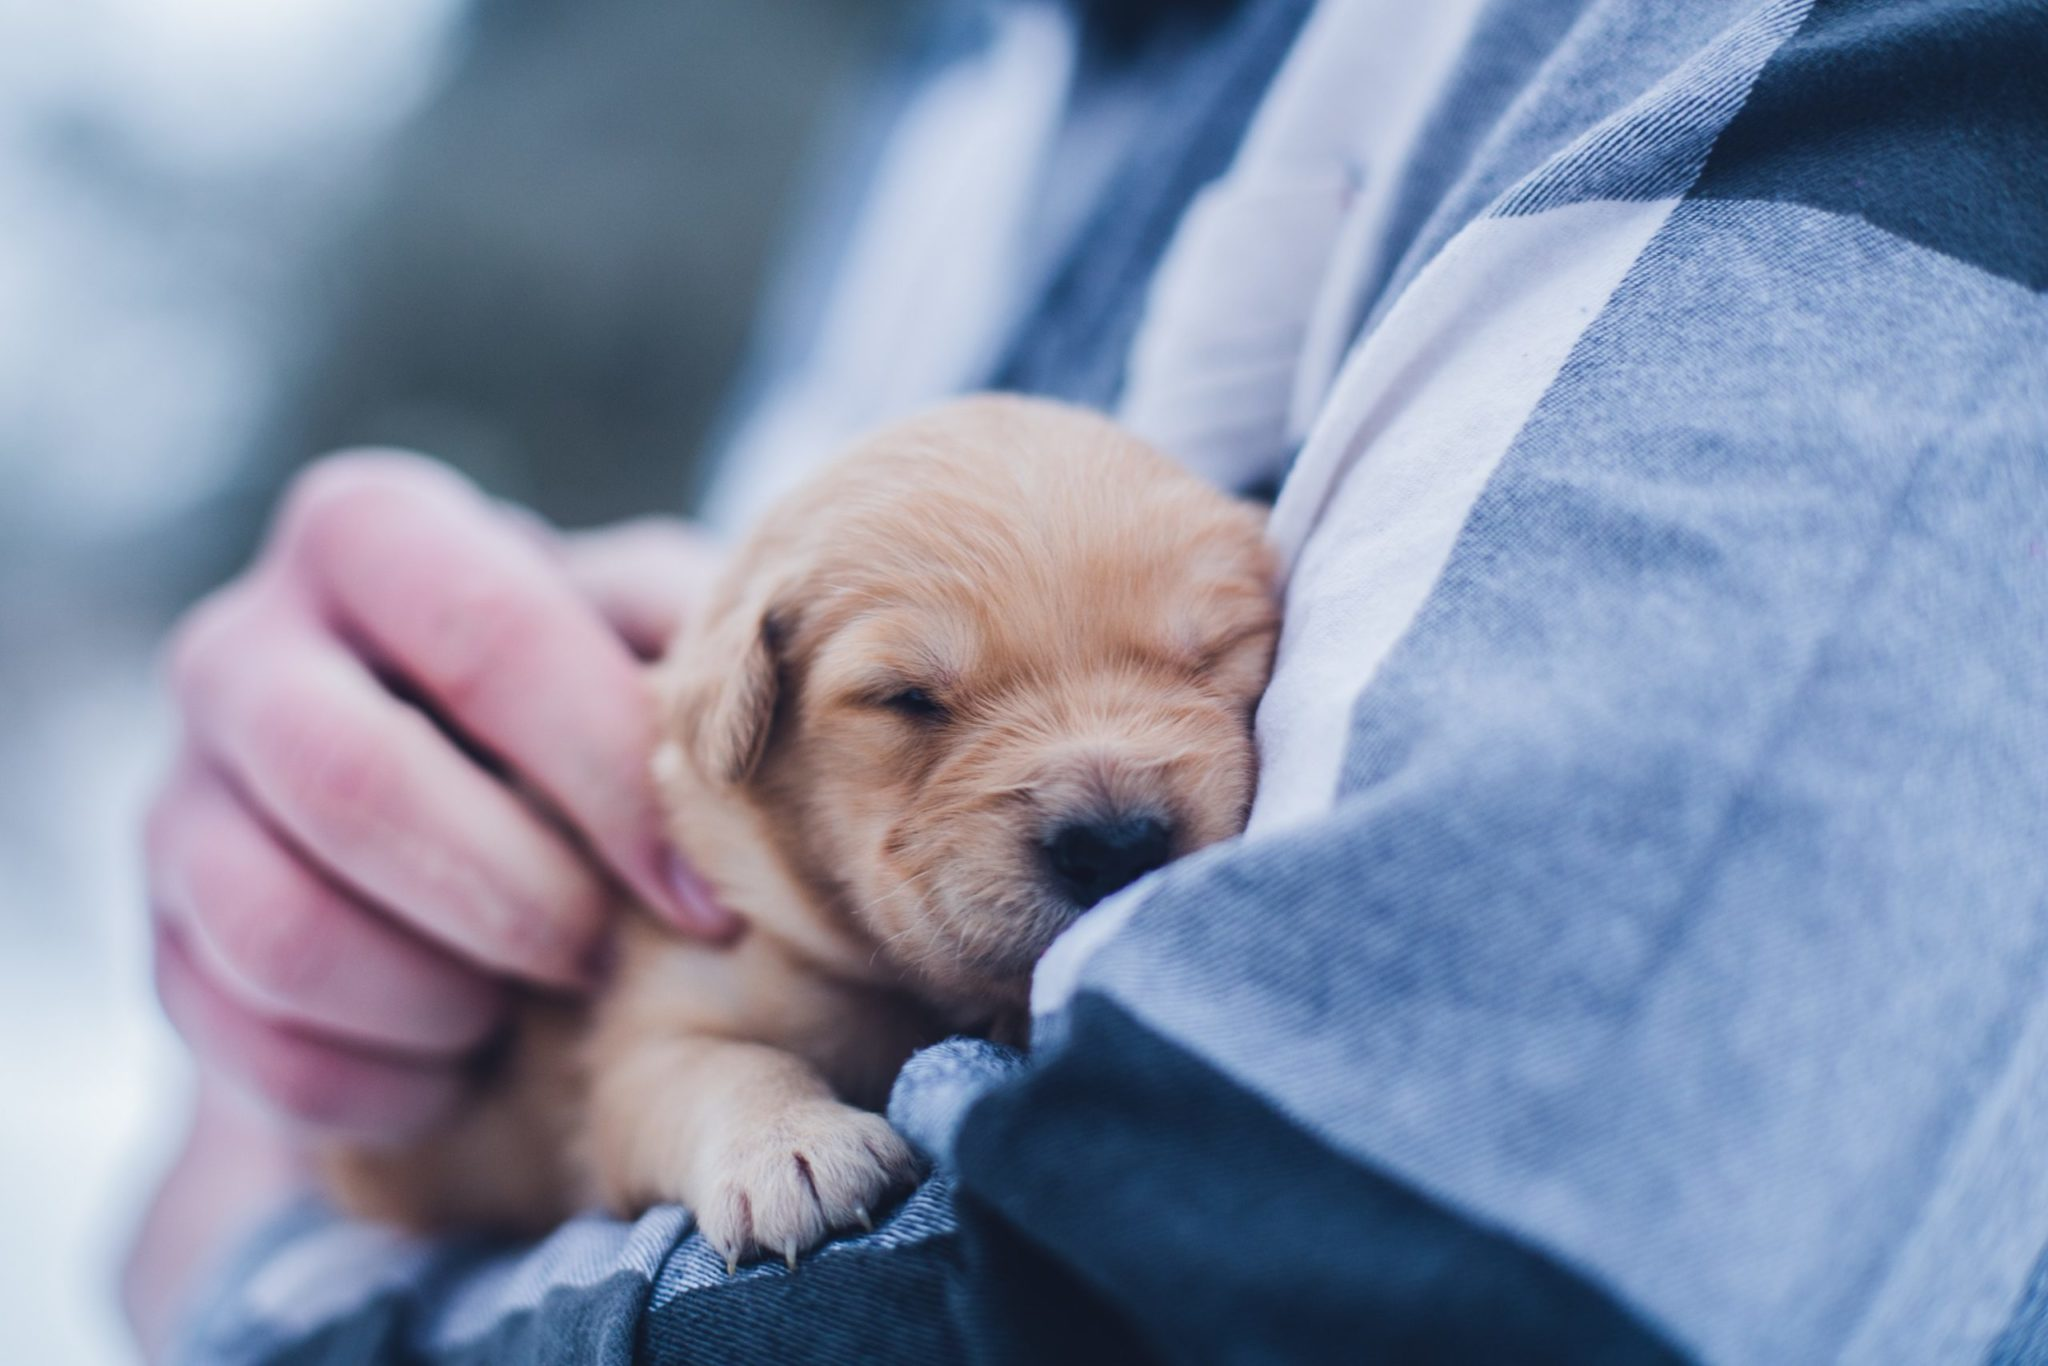 Washingtonian's Cutest Dog Contest: Just taking a little snooze. Photograph by Lydia Torrey via Unsplash.